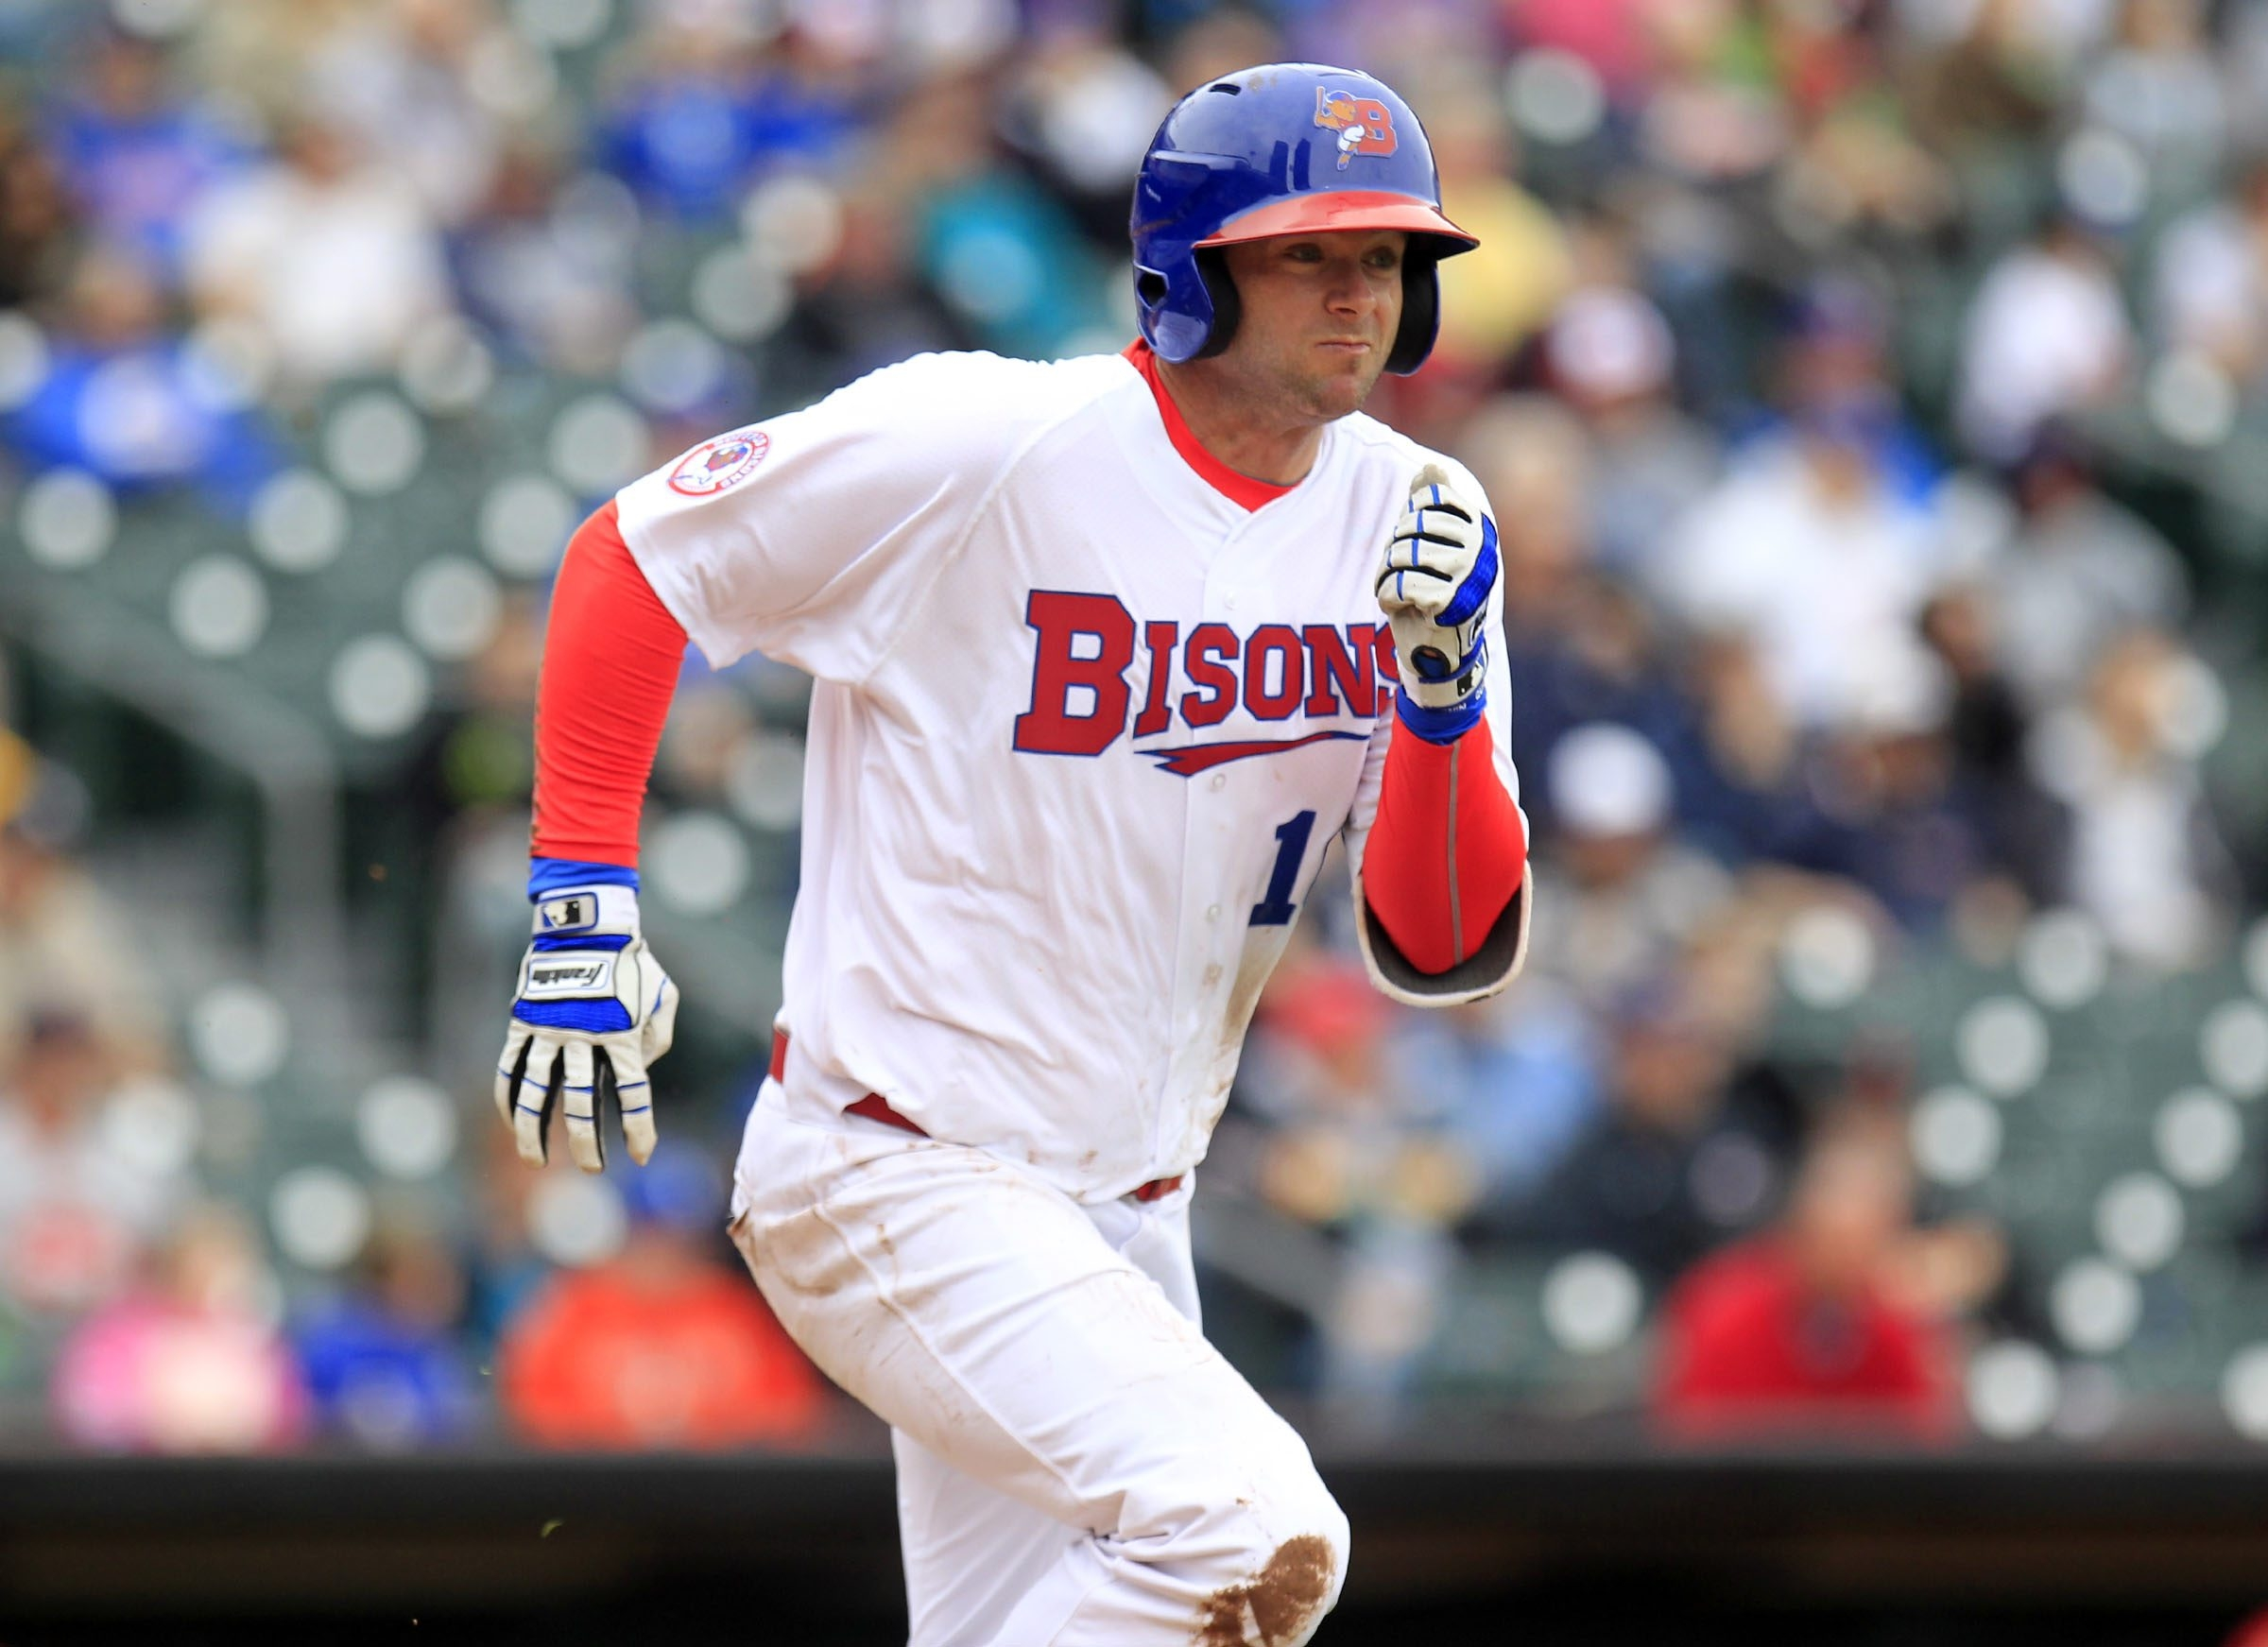 Matt Hague and the Bisons have a homestand that features Durham and Toledo.